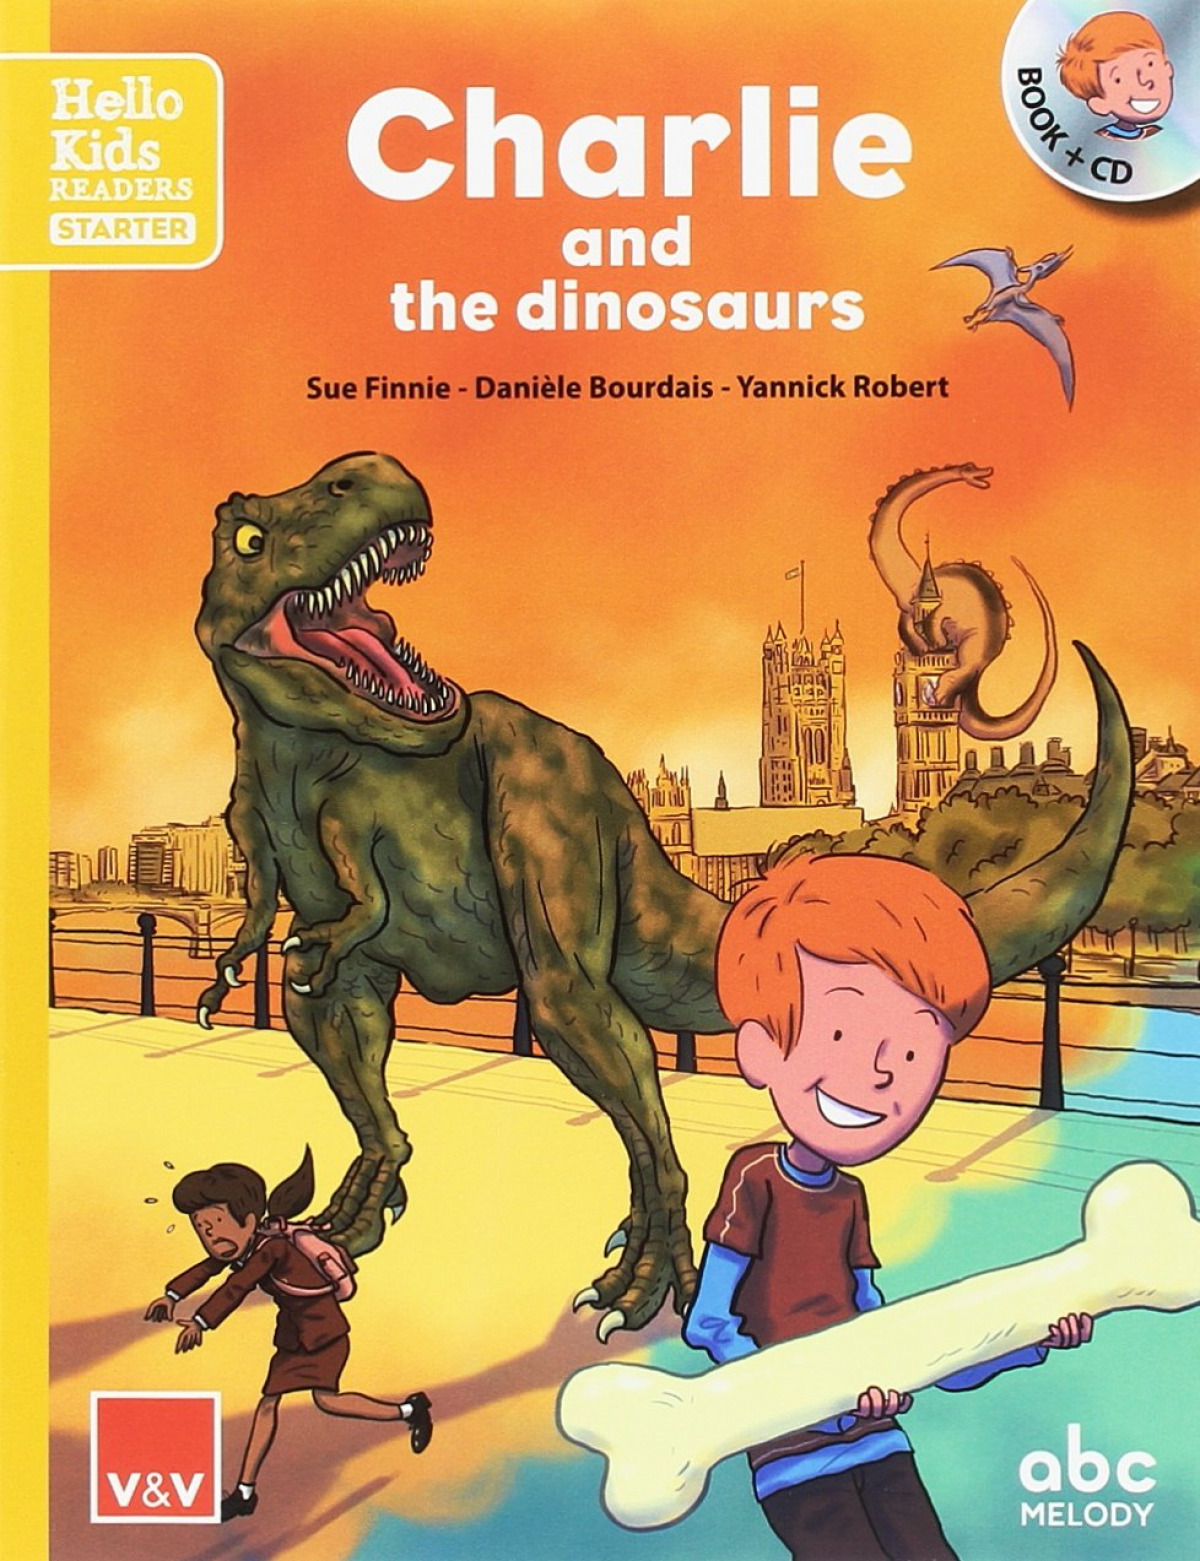 CHARLIE AND THE DINOSAURS HELLO KIDS READERS